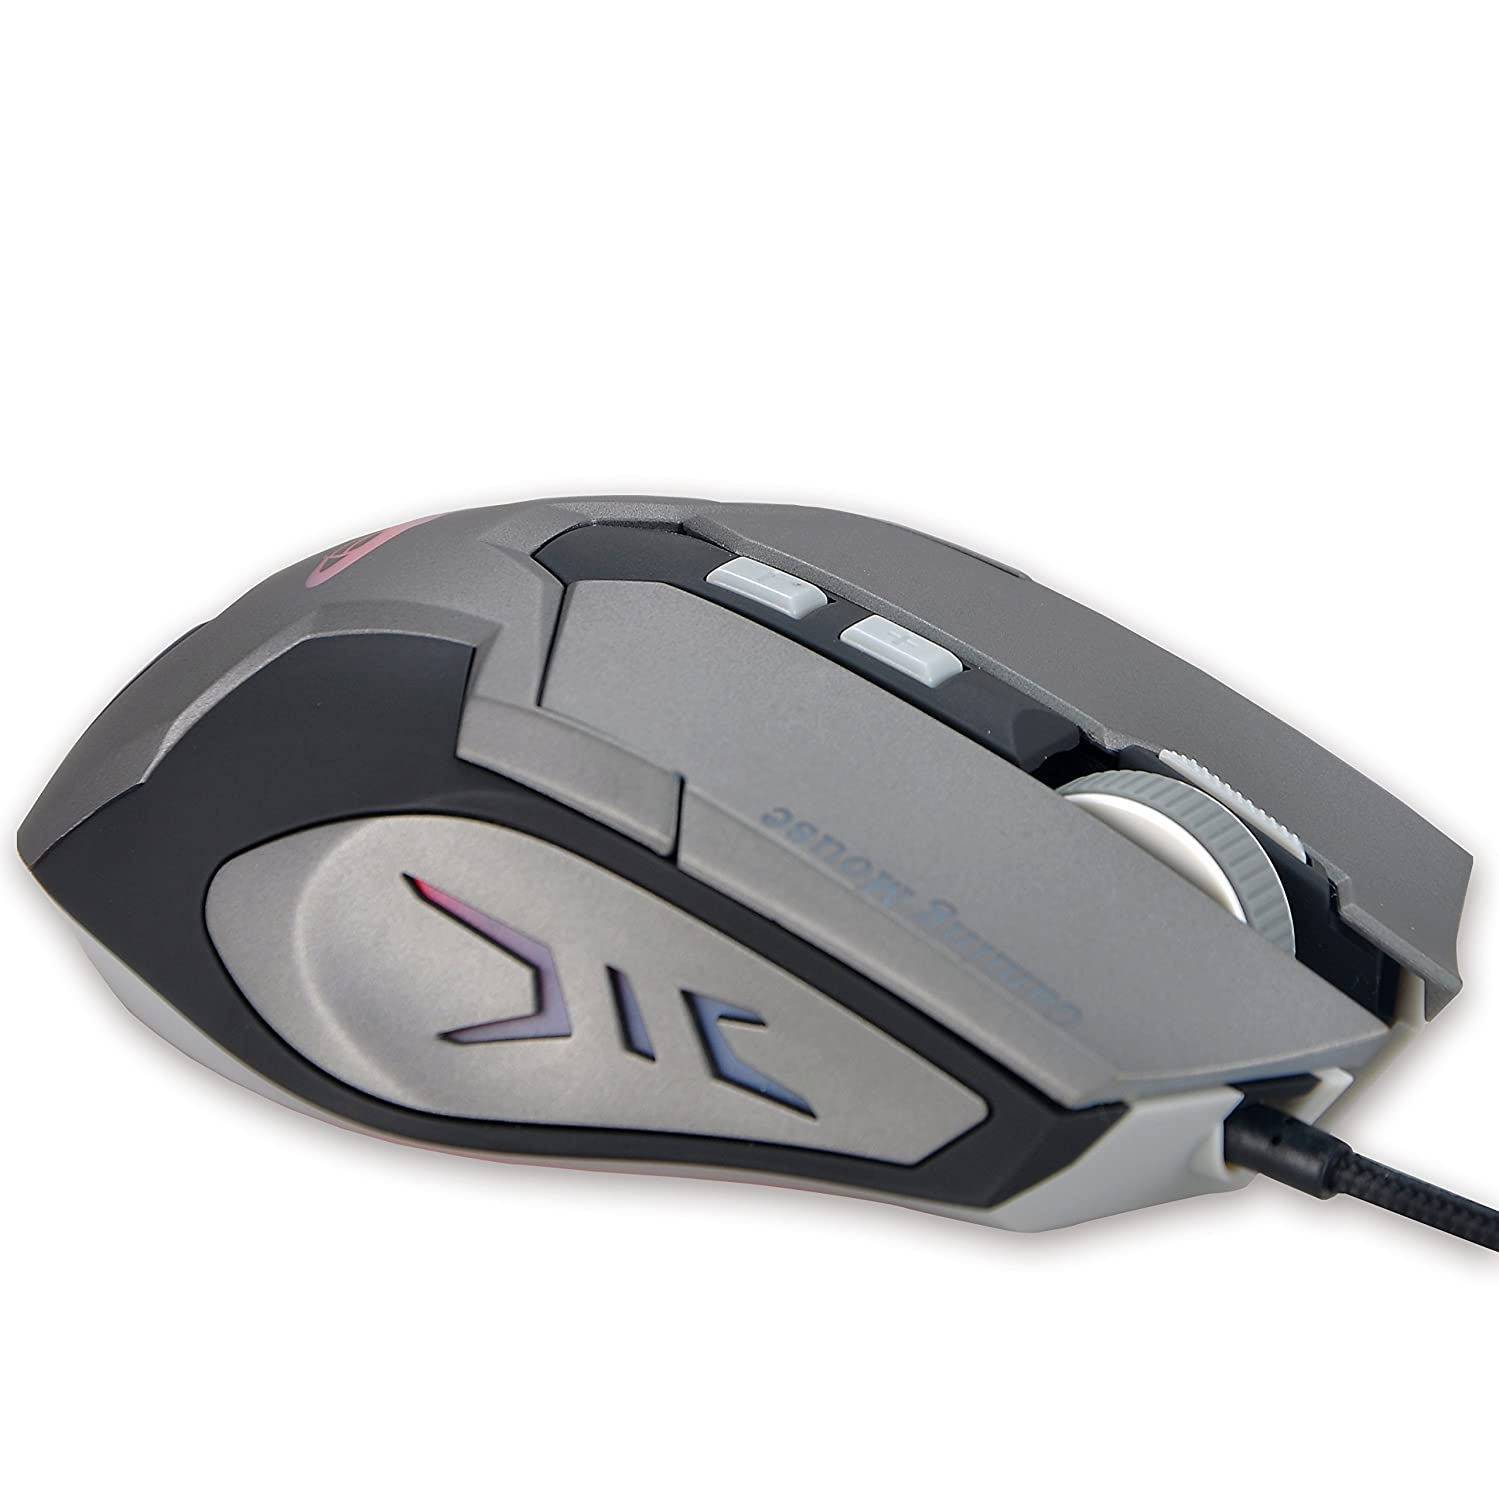 Amazon.com: iMicro COBRA USB Gaming Mouse (IM-COBZ2): Computers ...